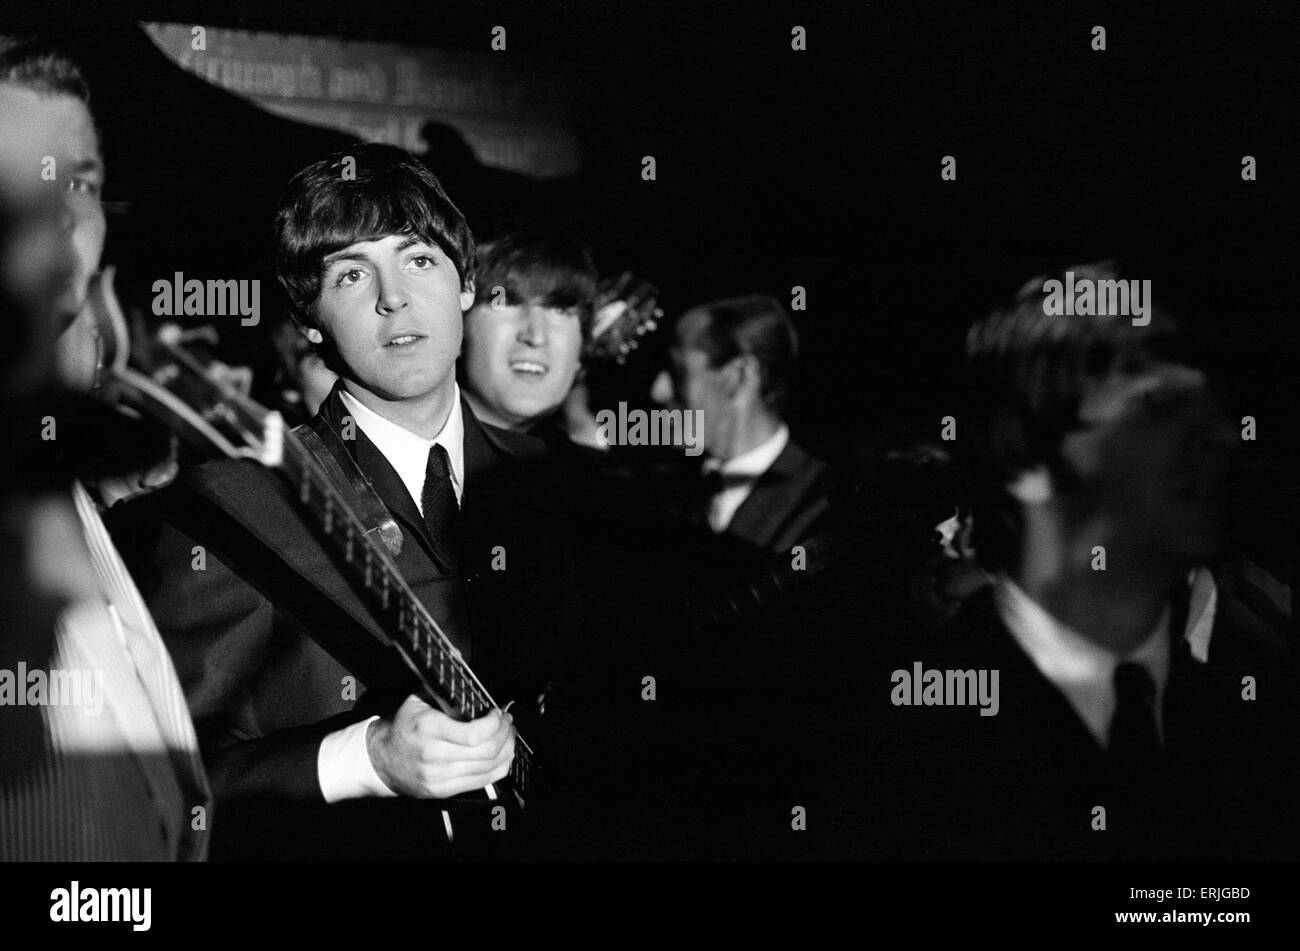 The Beatles 1964 American Tour Indianapolis, Indiana State Fair Coliseum. 3rd September 1964 - Stock Image